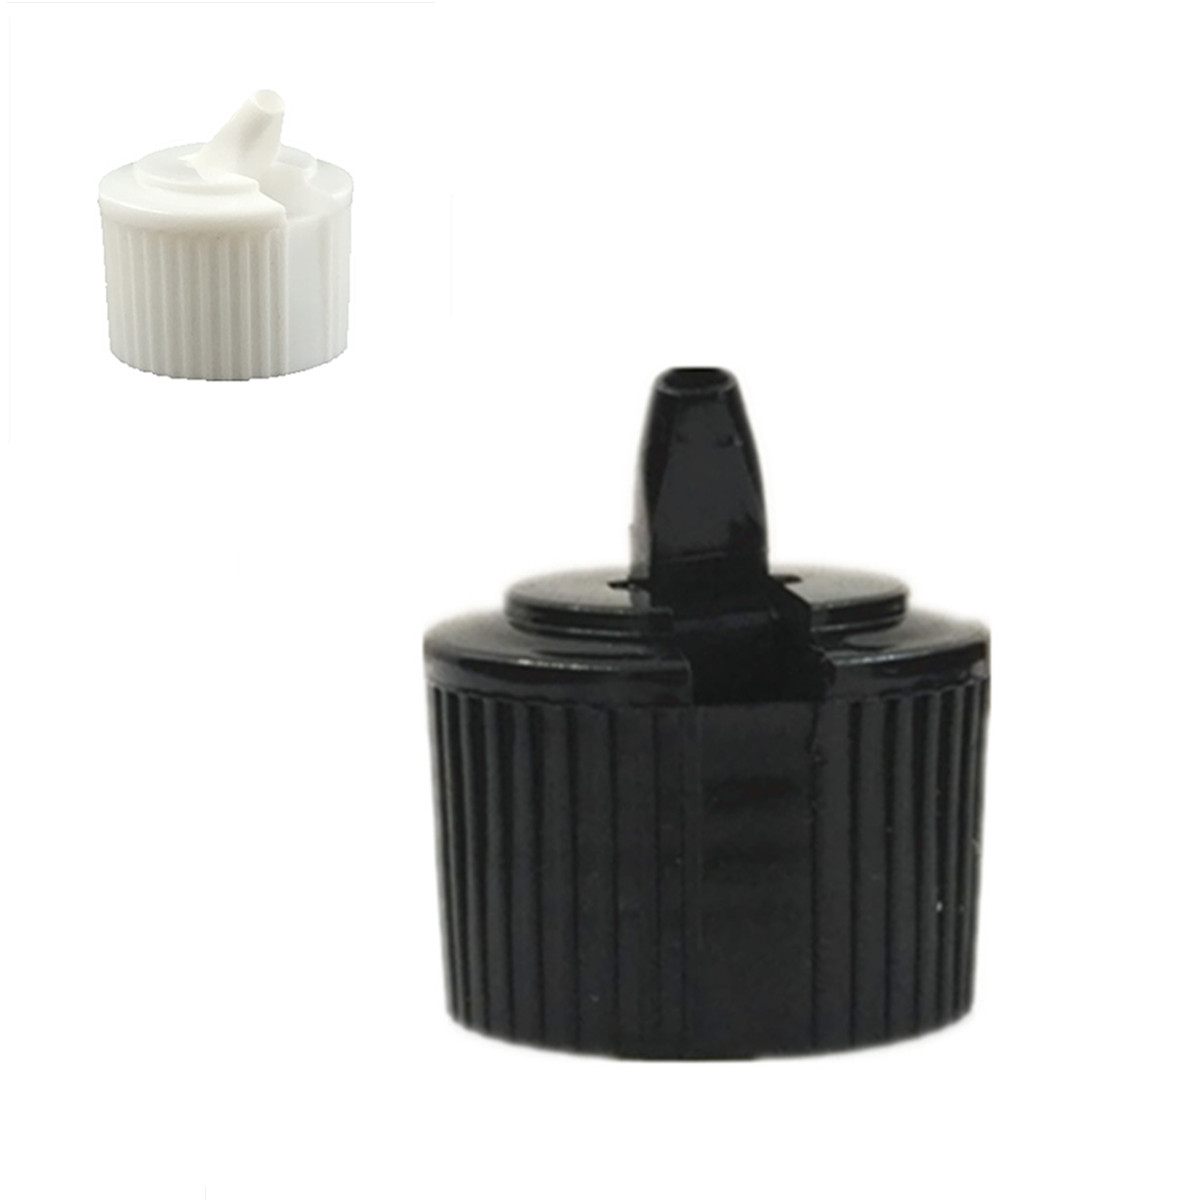 24-410 Ribbed Side Plastic Spout Top Caps Dispensing TURRET Cap 10pc